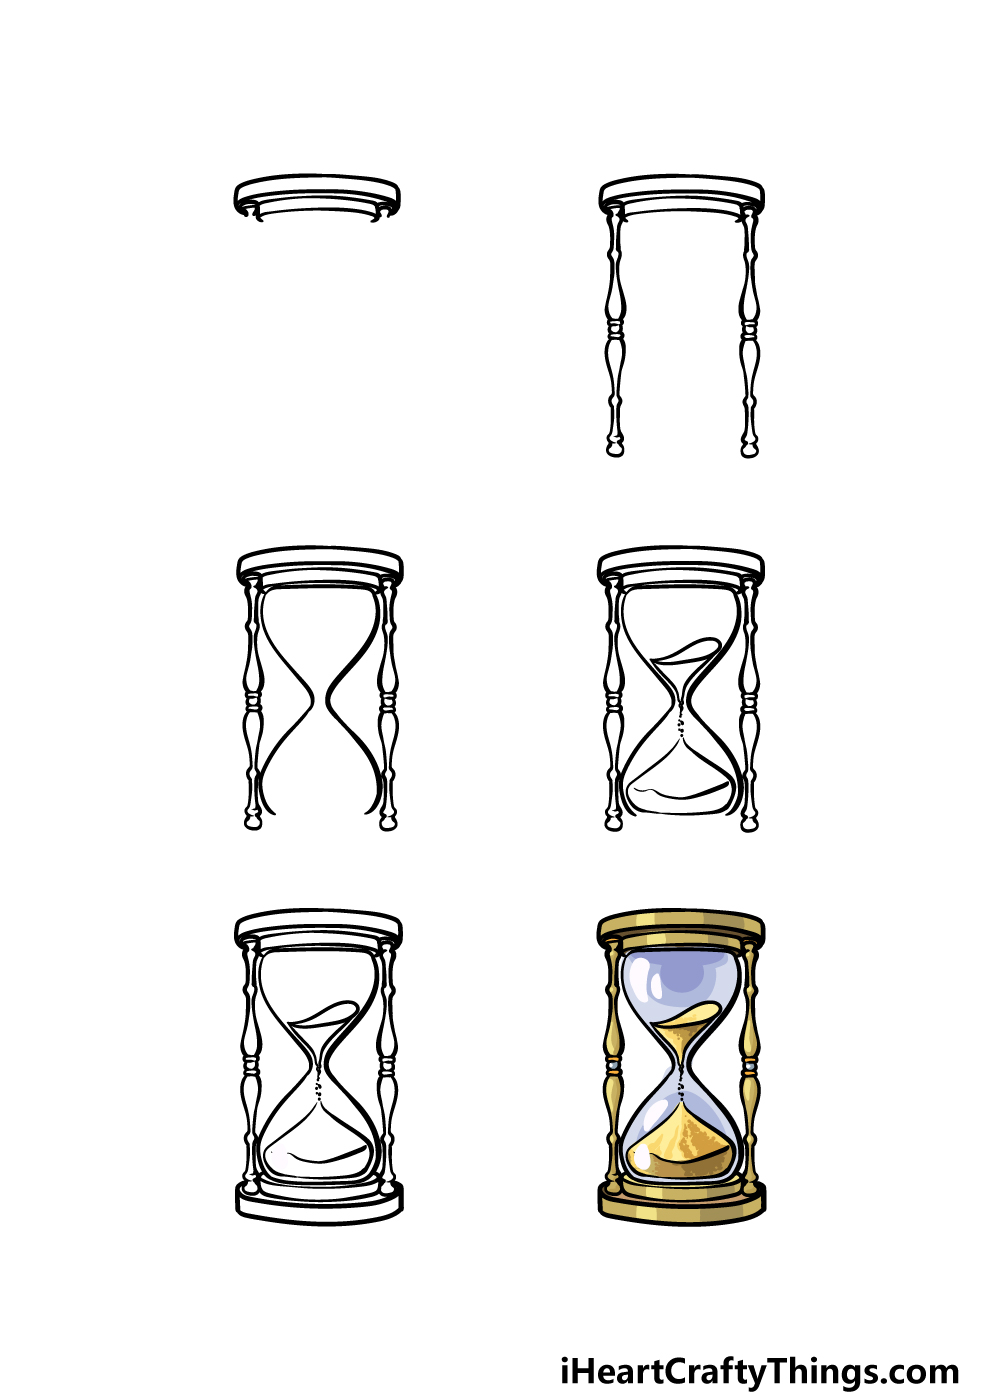 how to draw an hourglass in 6 steps